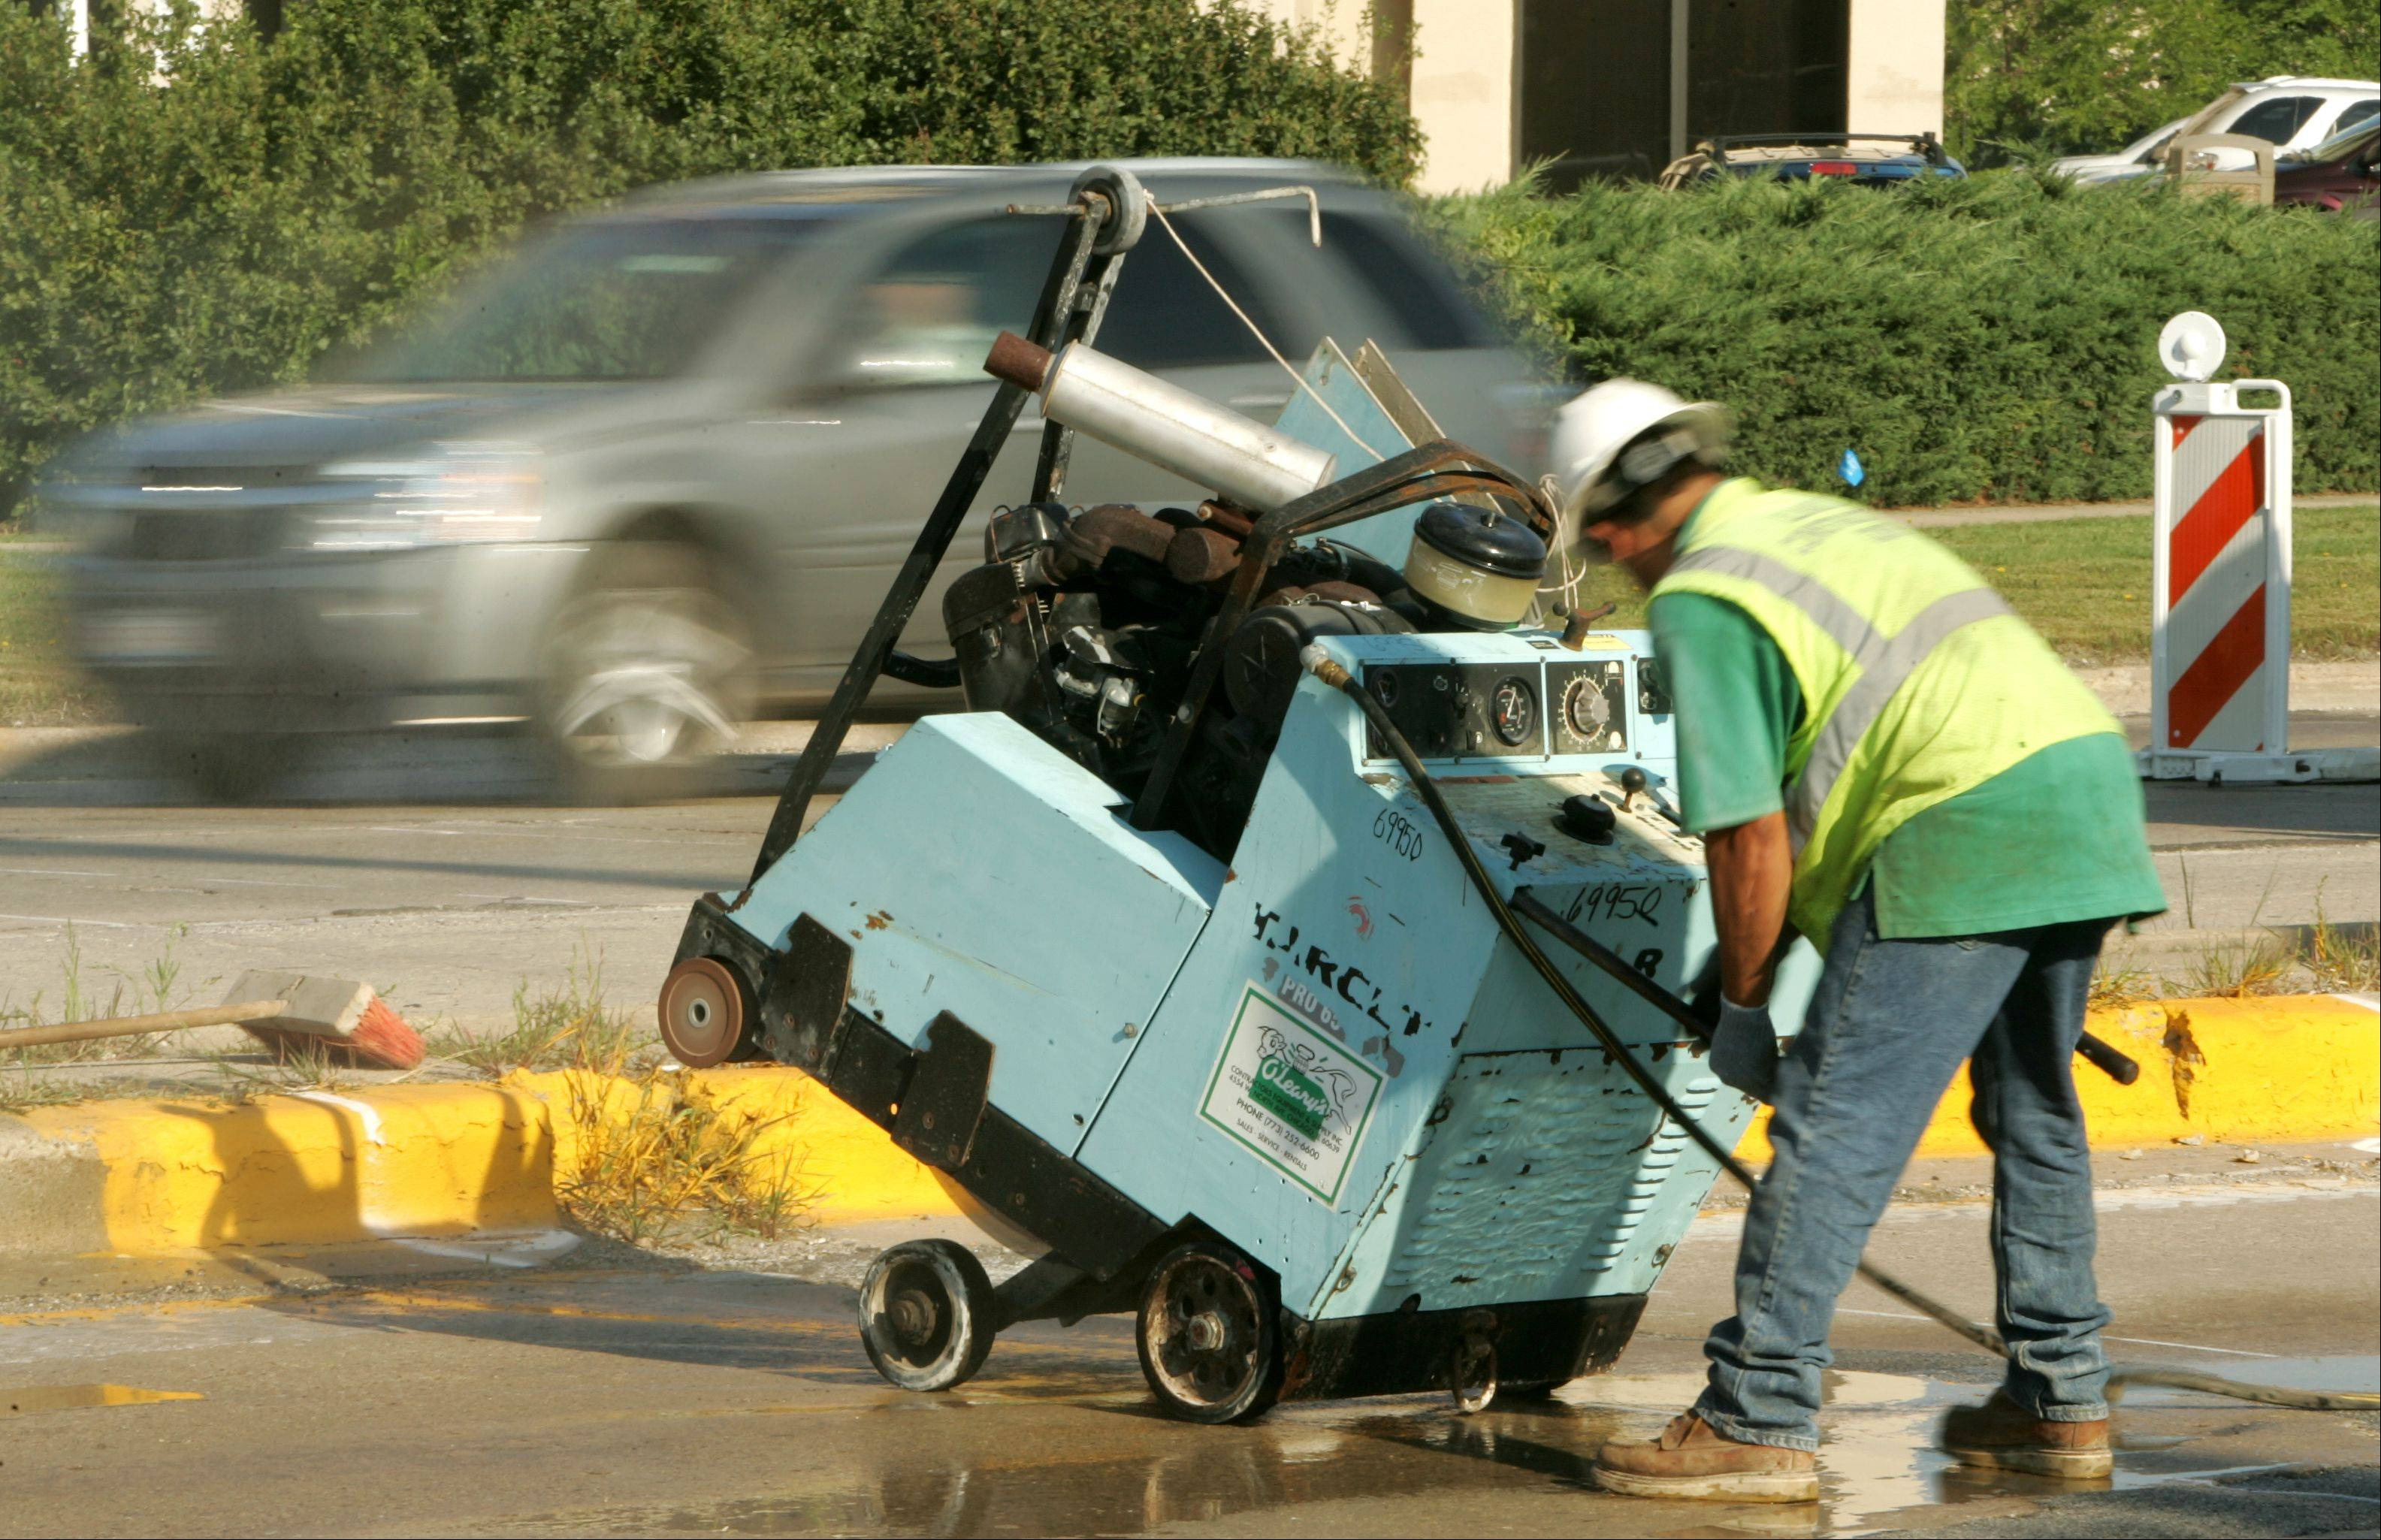 Mount Prospect has fallen about 10.7 miles behind on its street resurfacing program, and it's only expected to get worse next year. The lag has some village officials concerned they may eventually be forced to spend more money to reconstruct roads that have been let go for too long.